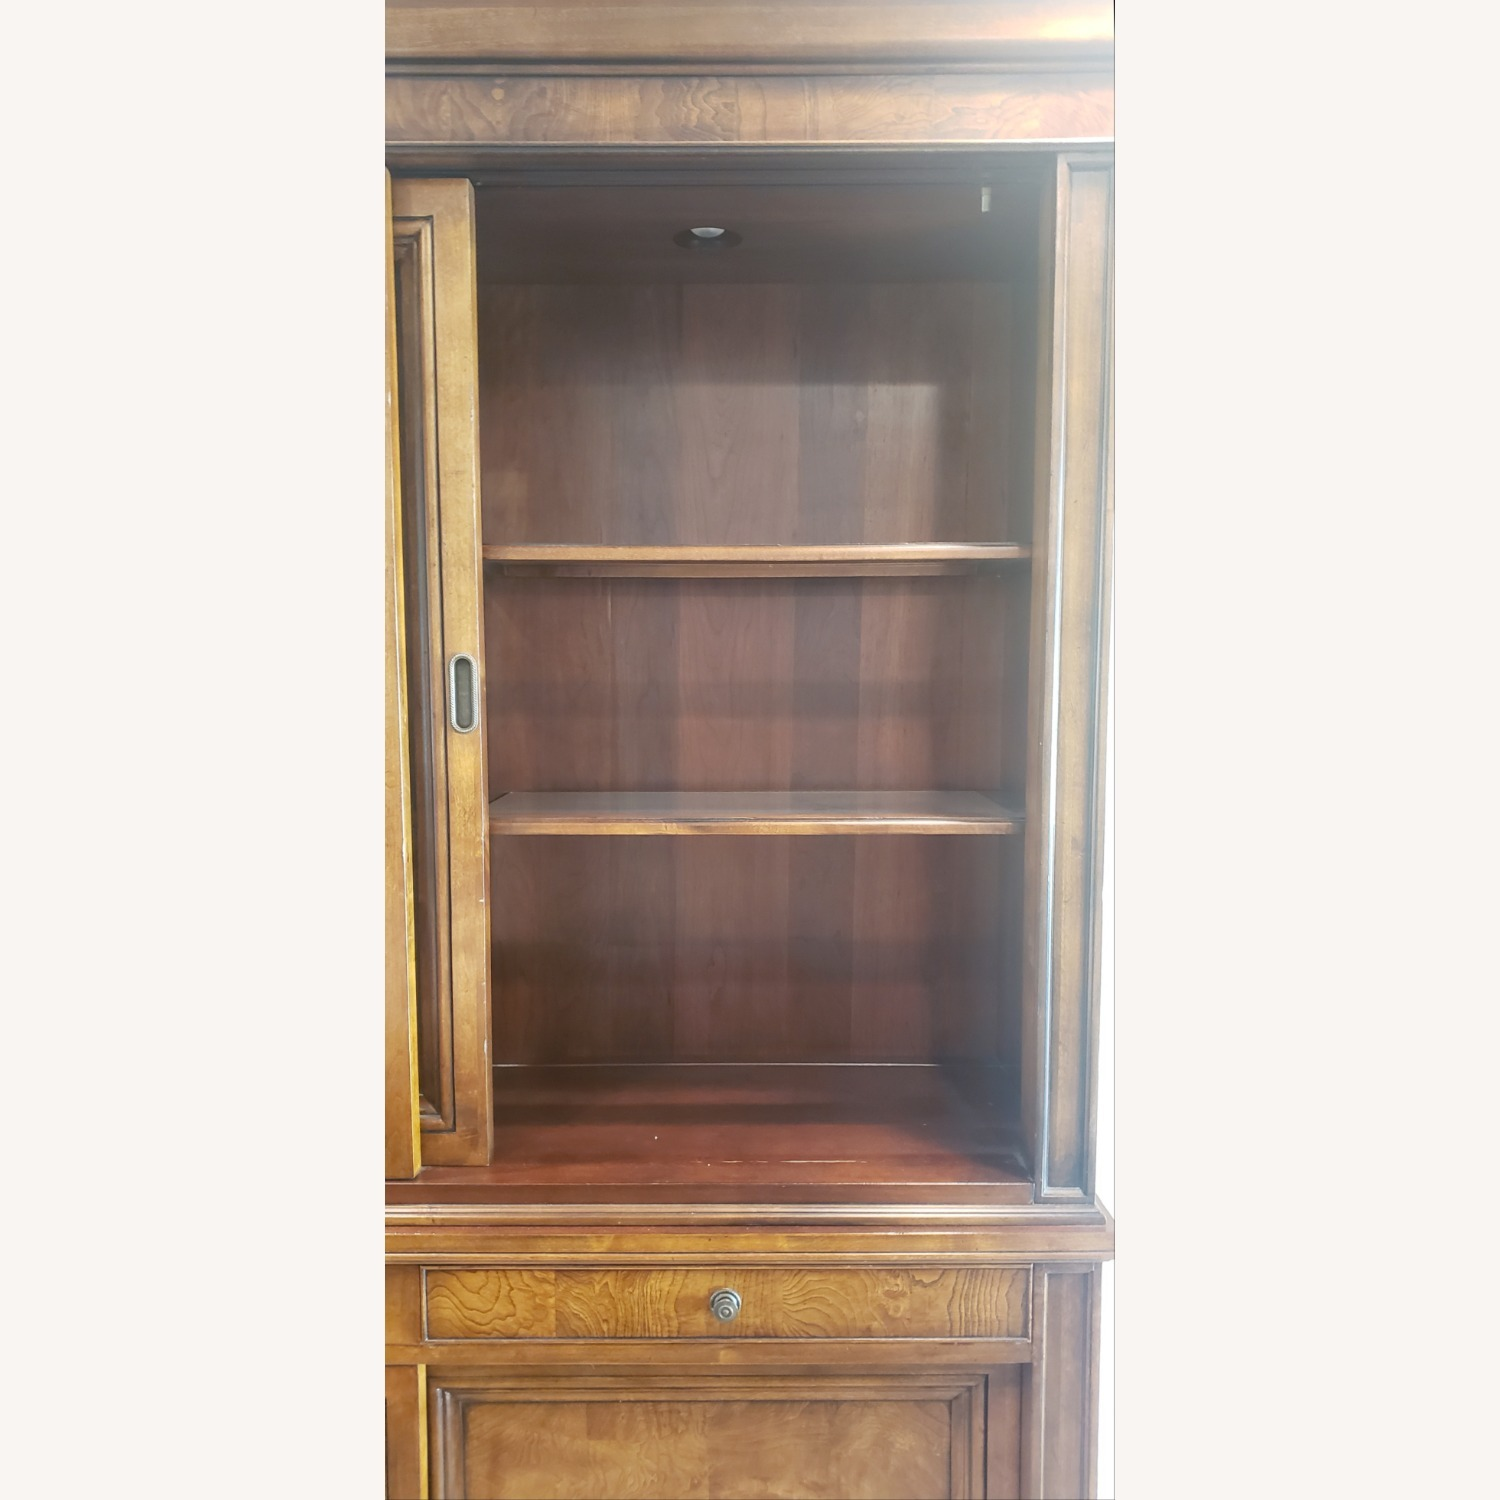 Ethan Allen Townhouse China Cabinet - image-4